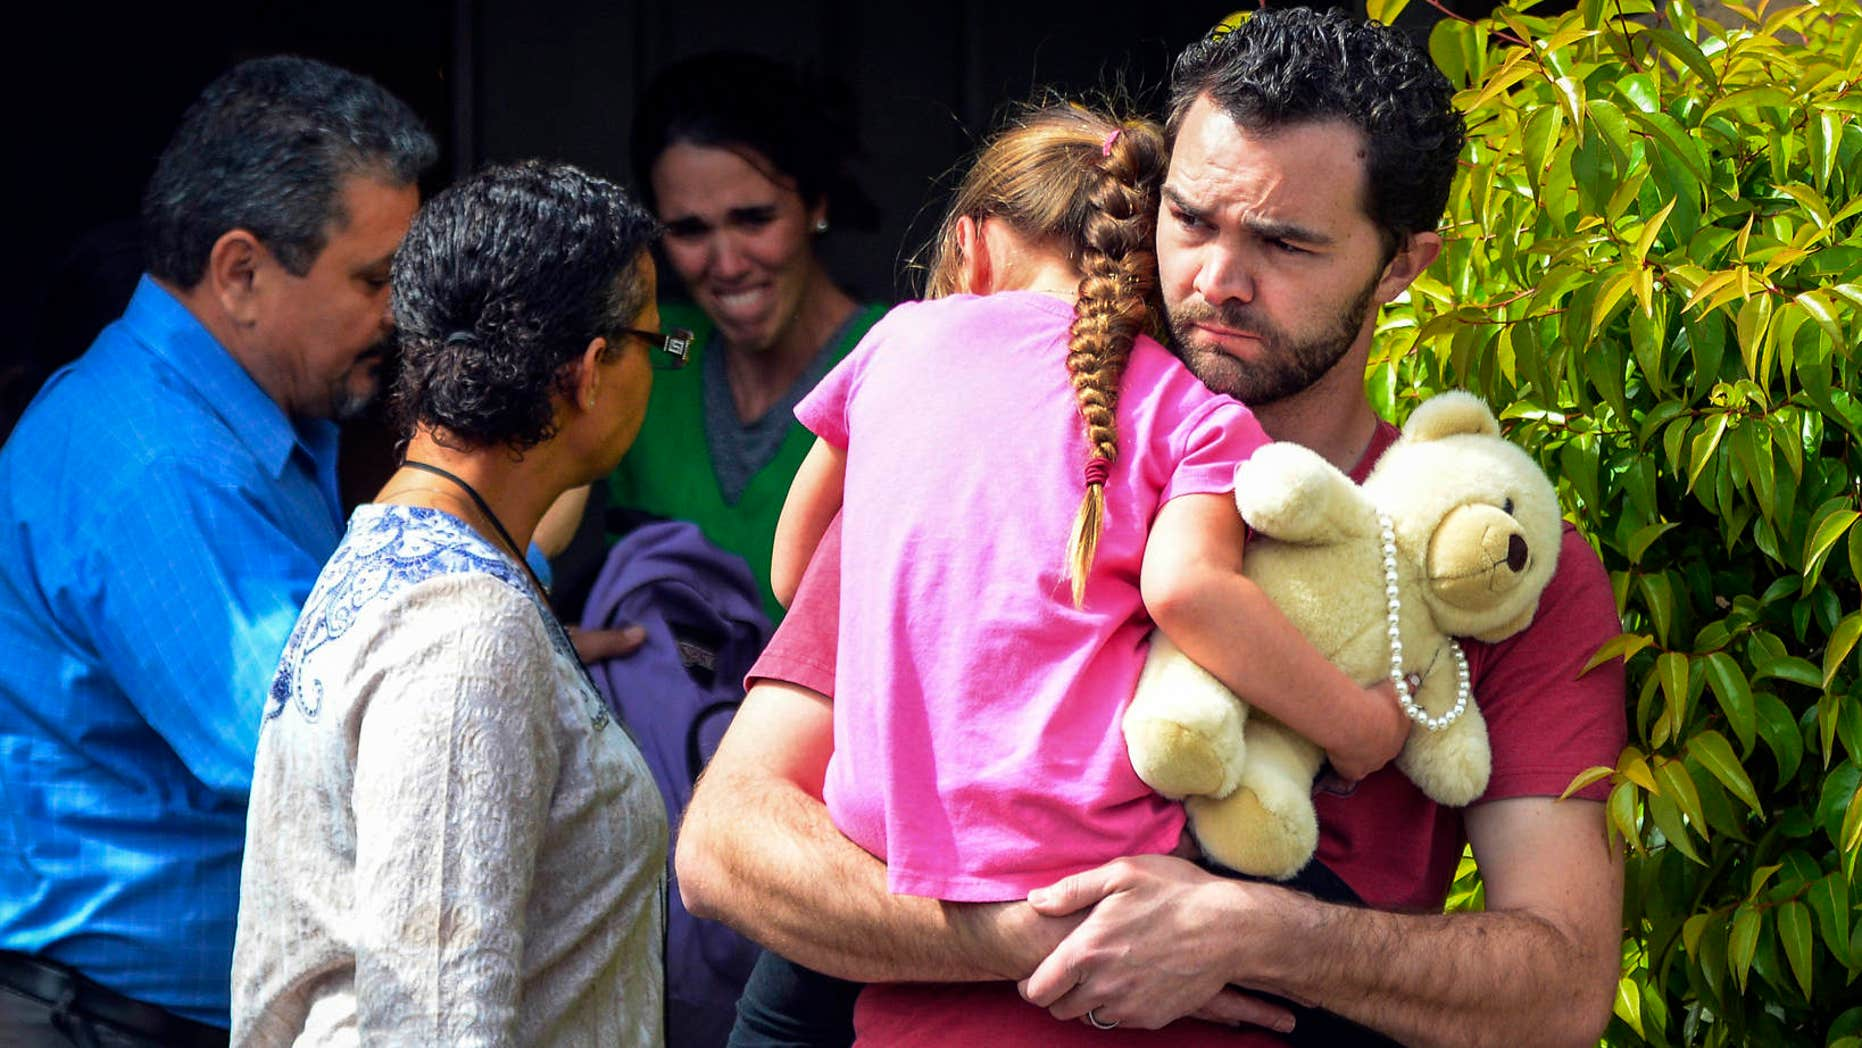 FILE - In this March 21, 2016 file photo, Rusty Page carries Lexi while Summer Page, in the background, cries as members of family services, left, arrive to take Lexi away from her foster family in Santa Clarita, Calif.